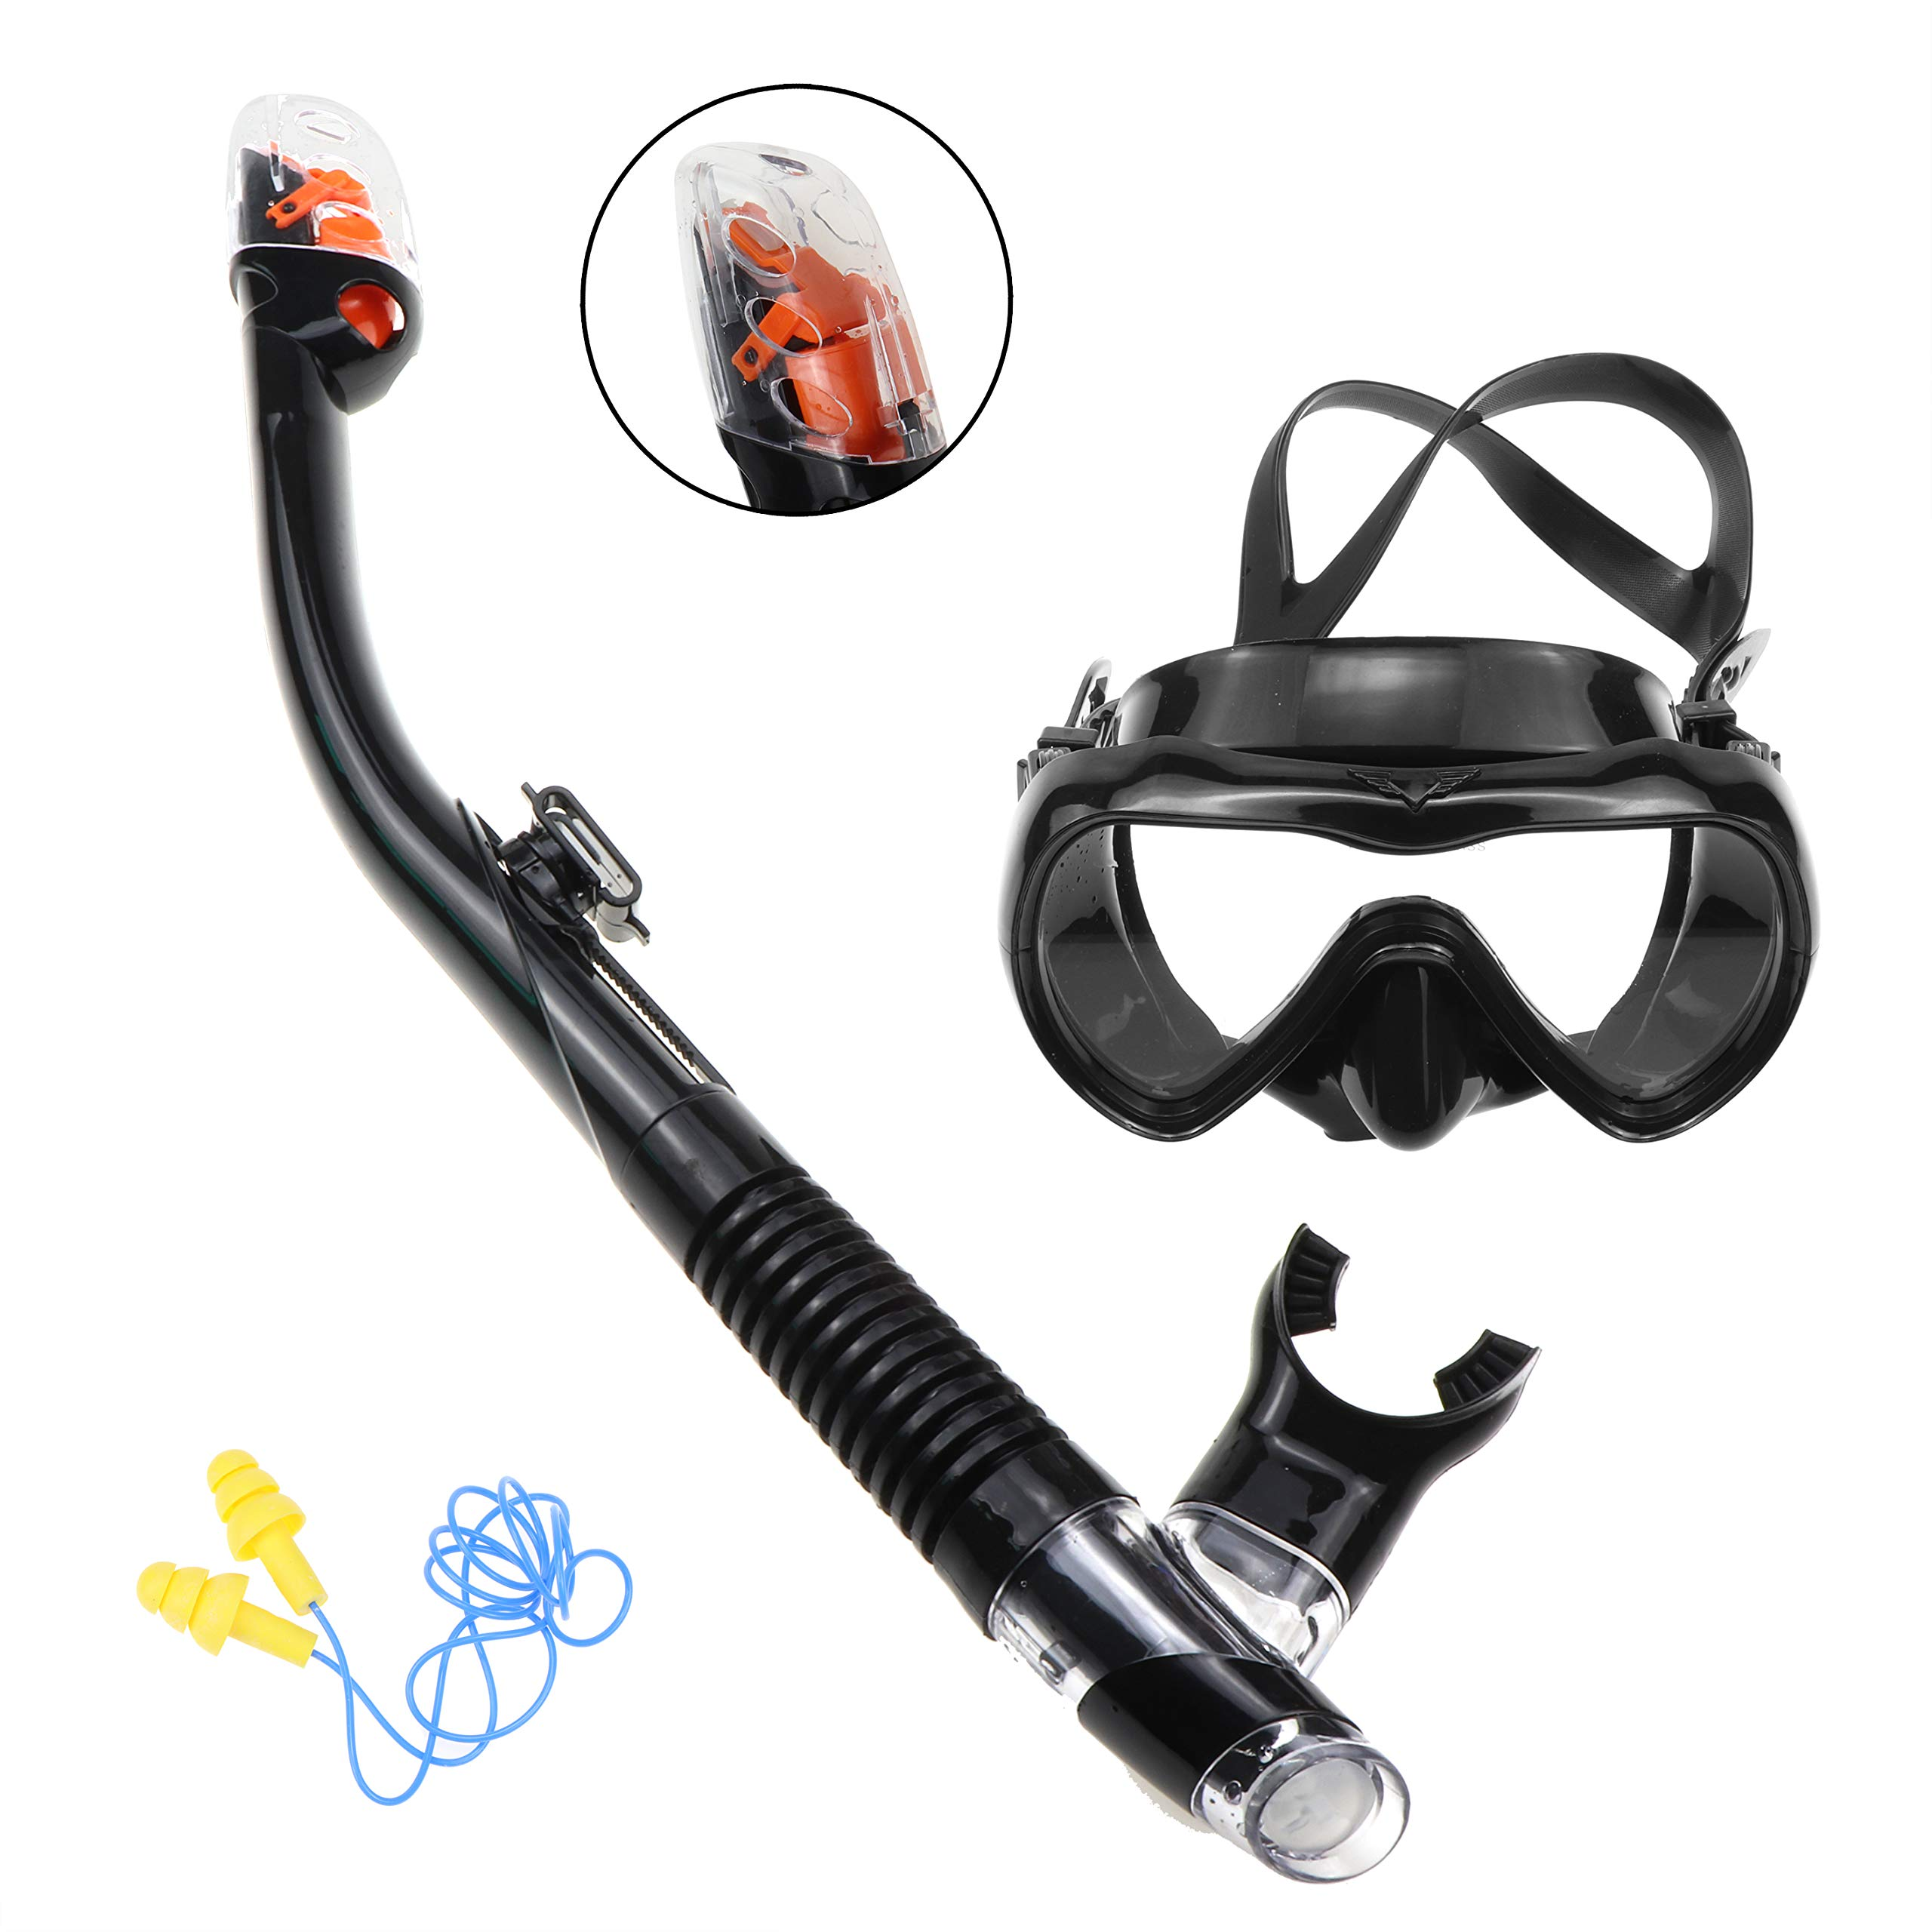 SENDOU Panoramic Wide View Scuba Diving Snorkeling Freediving Mask Swimming Earplug Snorkel Set 3Pcs (Black)